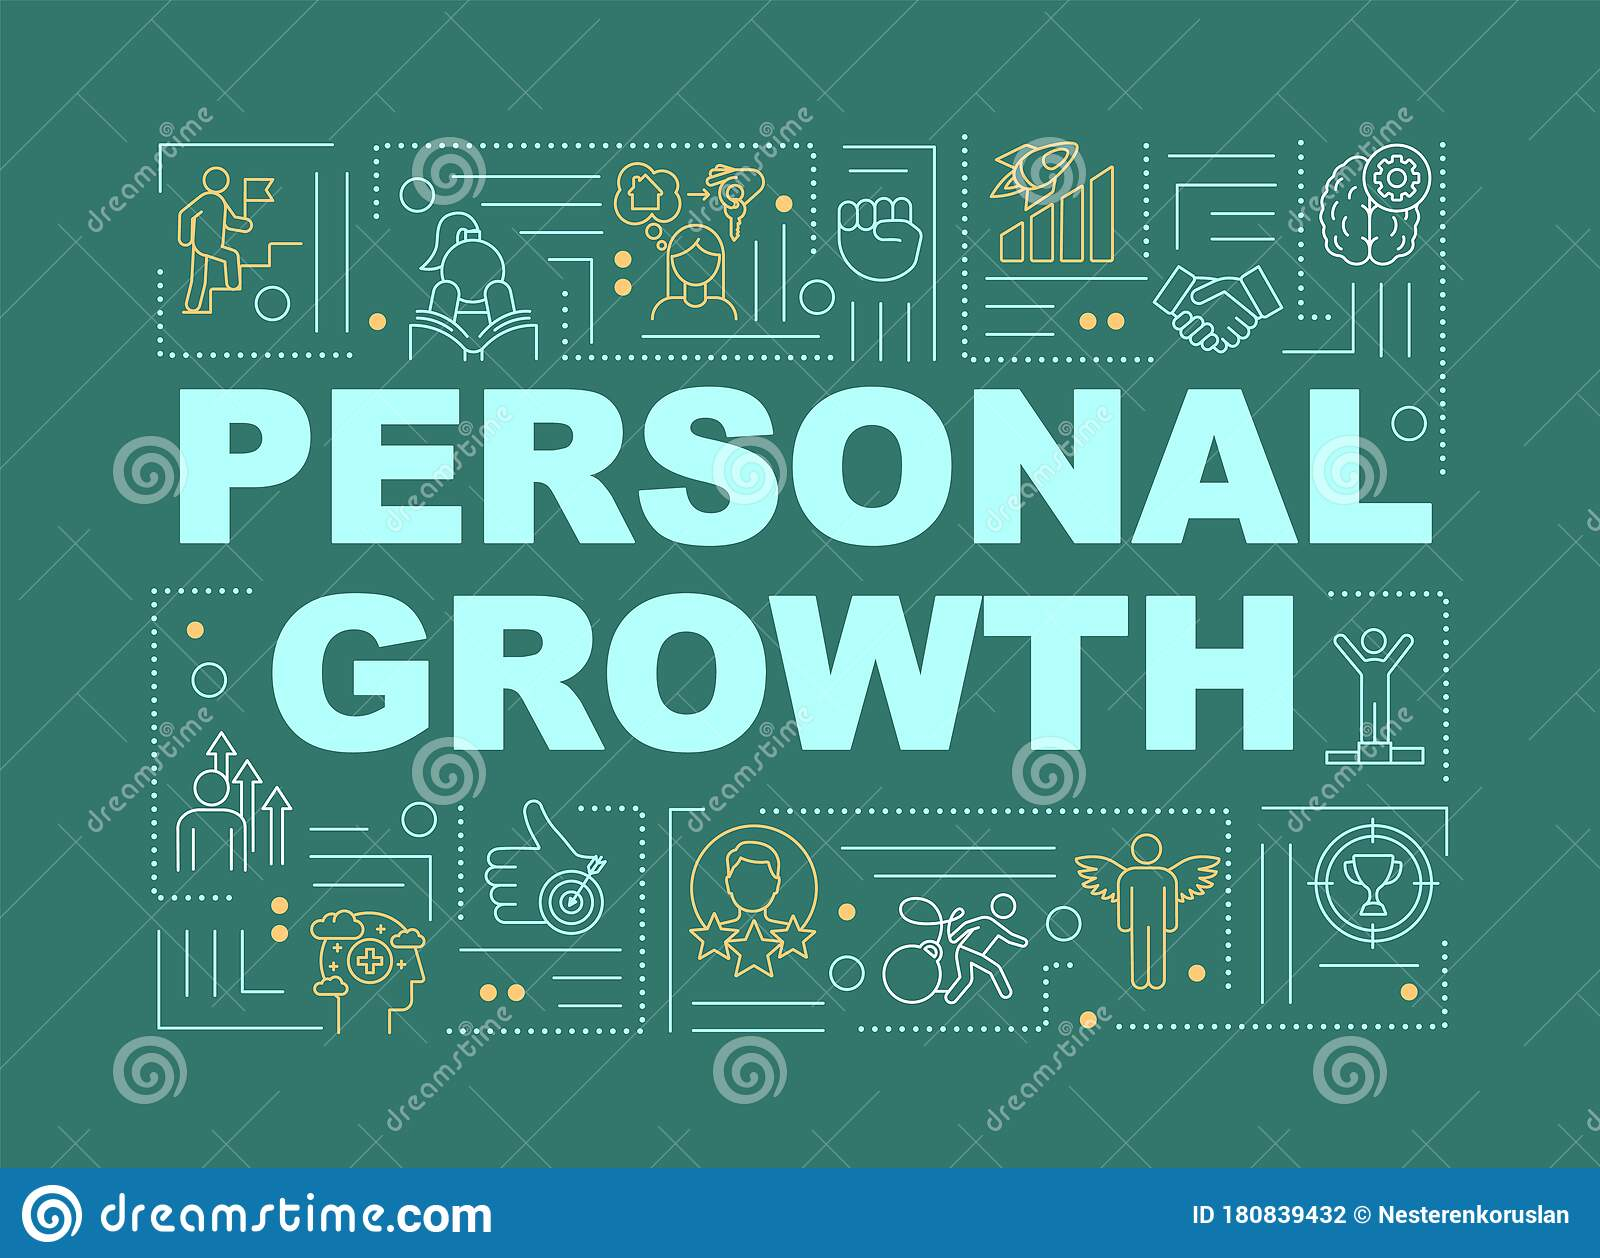 Personal Growth Green Word Concepts Banner Stock Vector Illustration Of Design Graphic 180839432